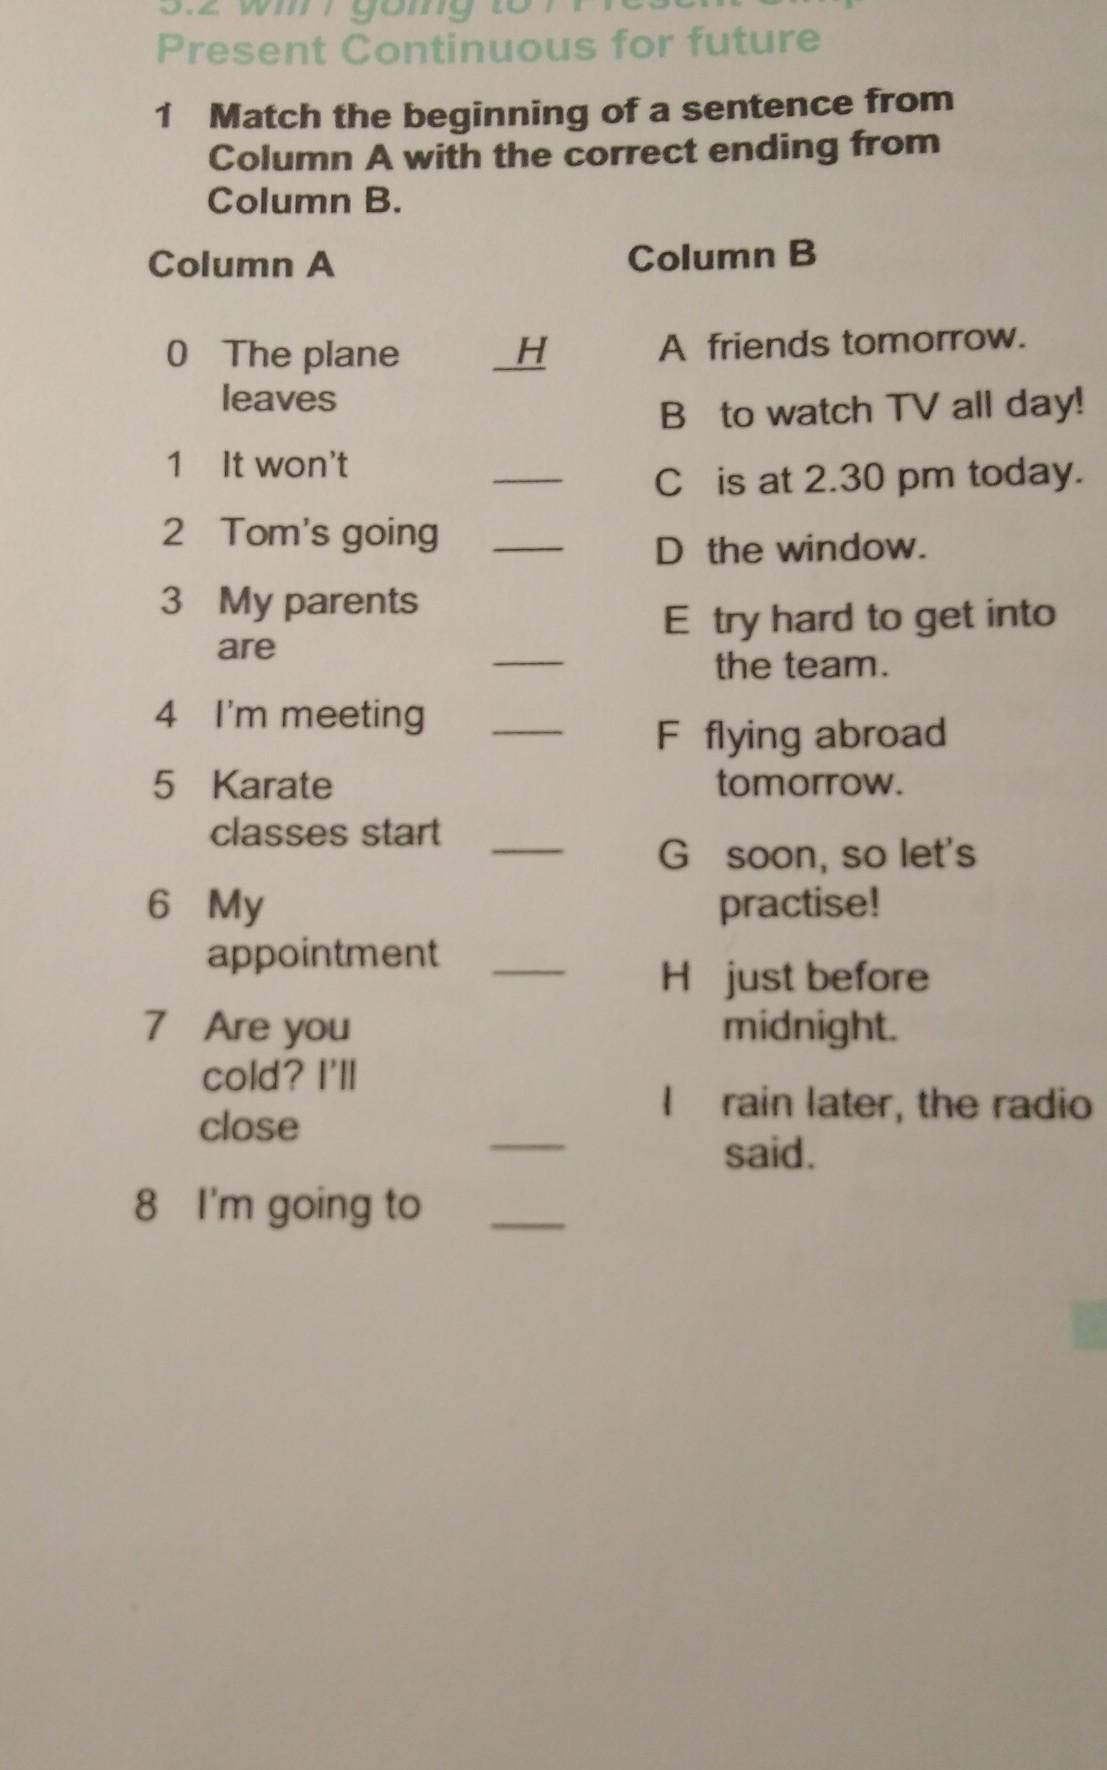 Match The Beginning Of A Sentence From Column A With The